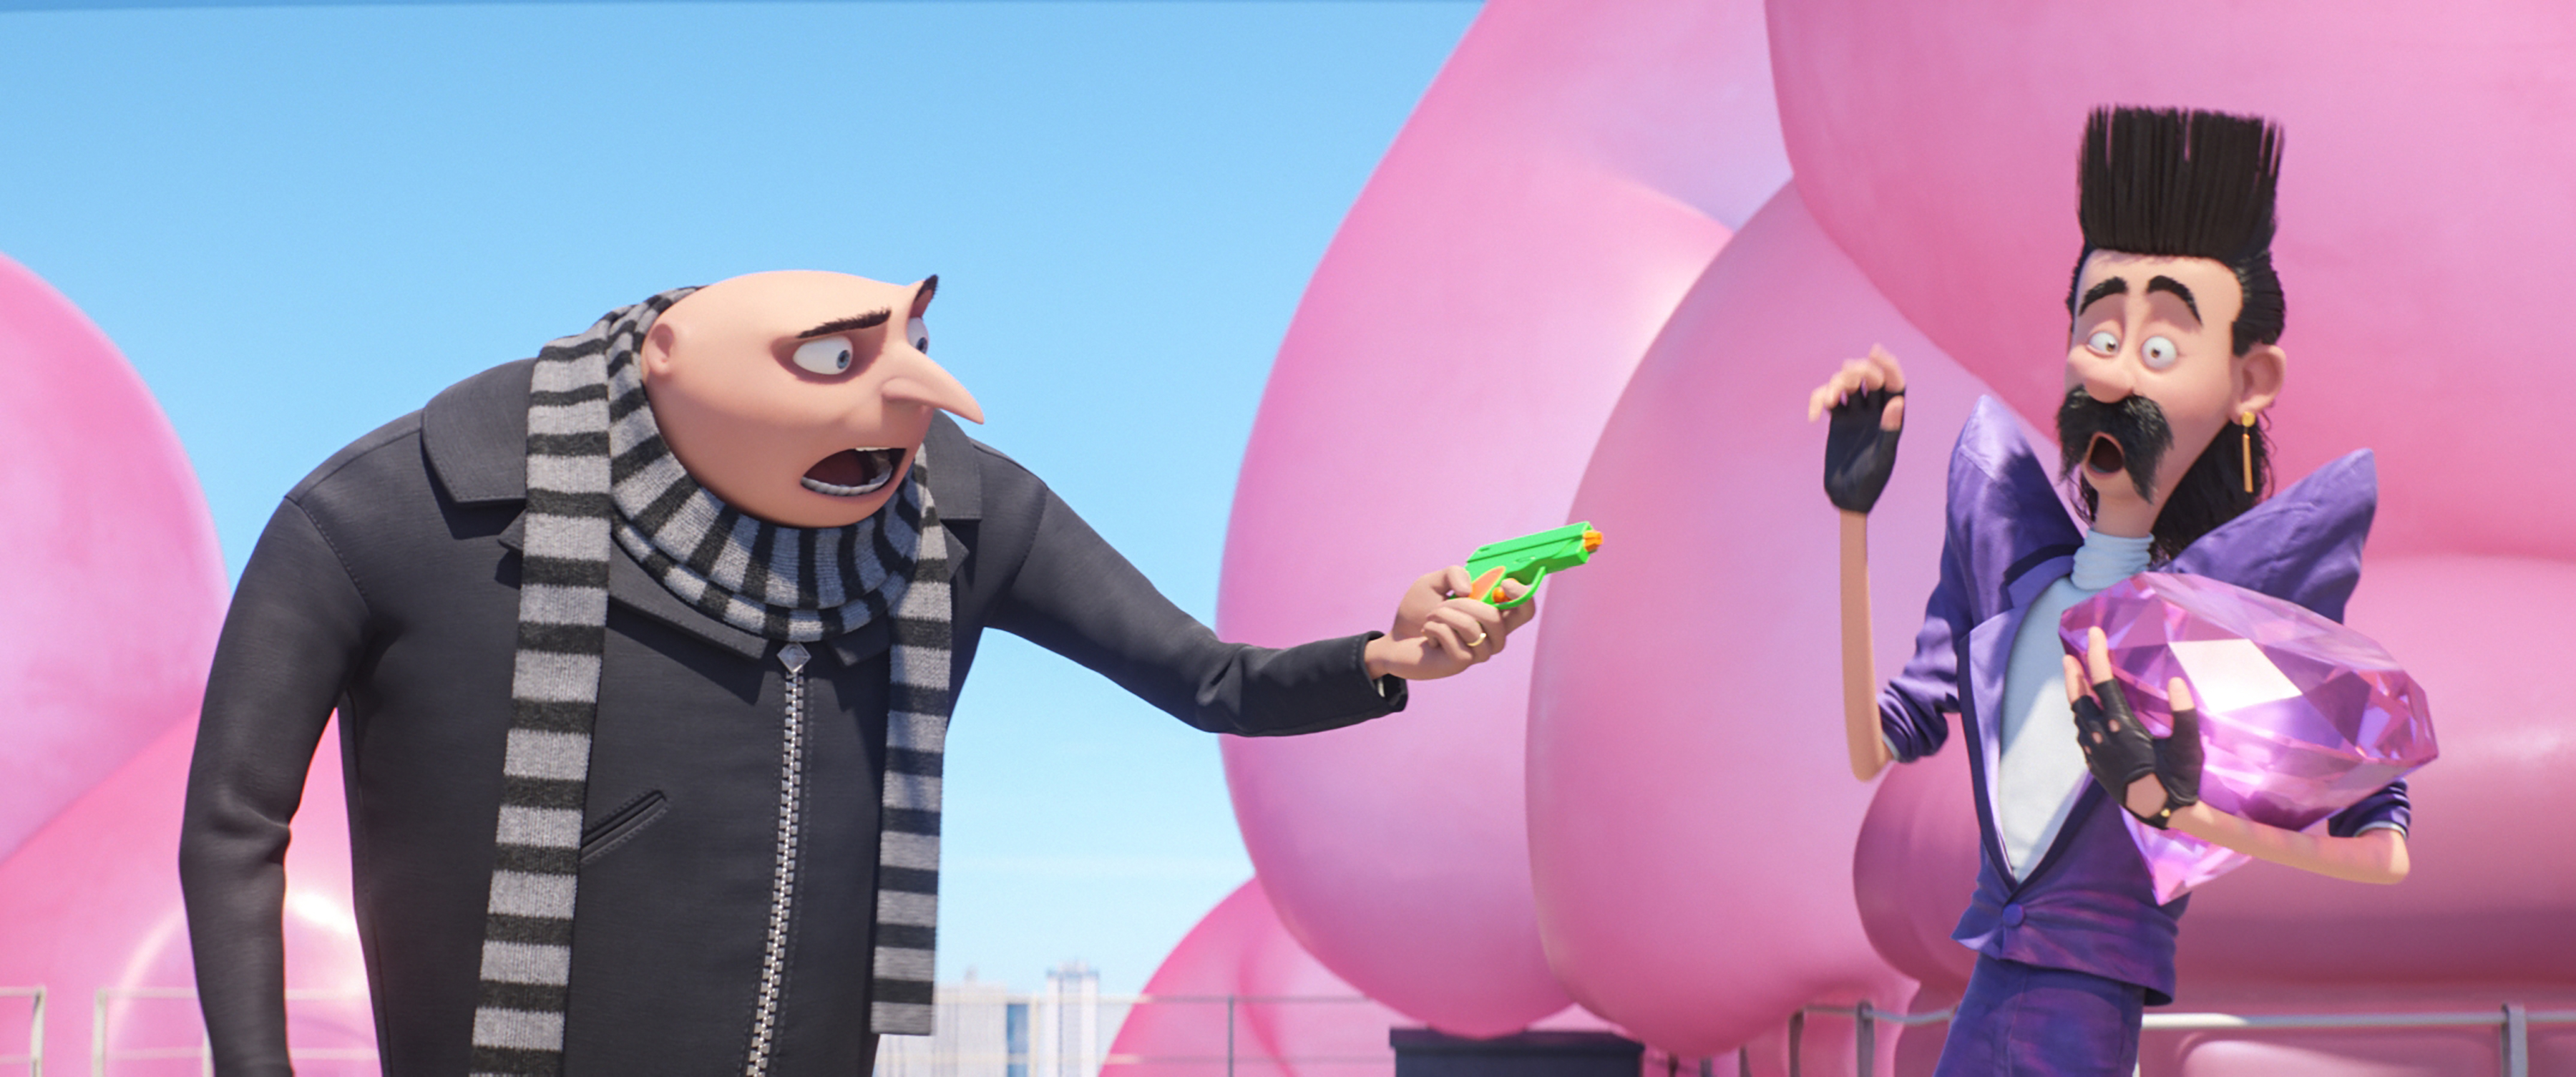 Despicable Me 3 UK release date, trailer and cast details – everything you need to know